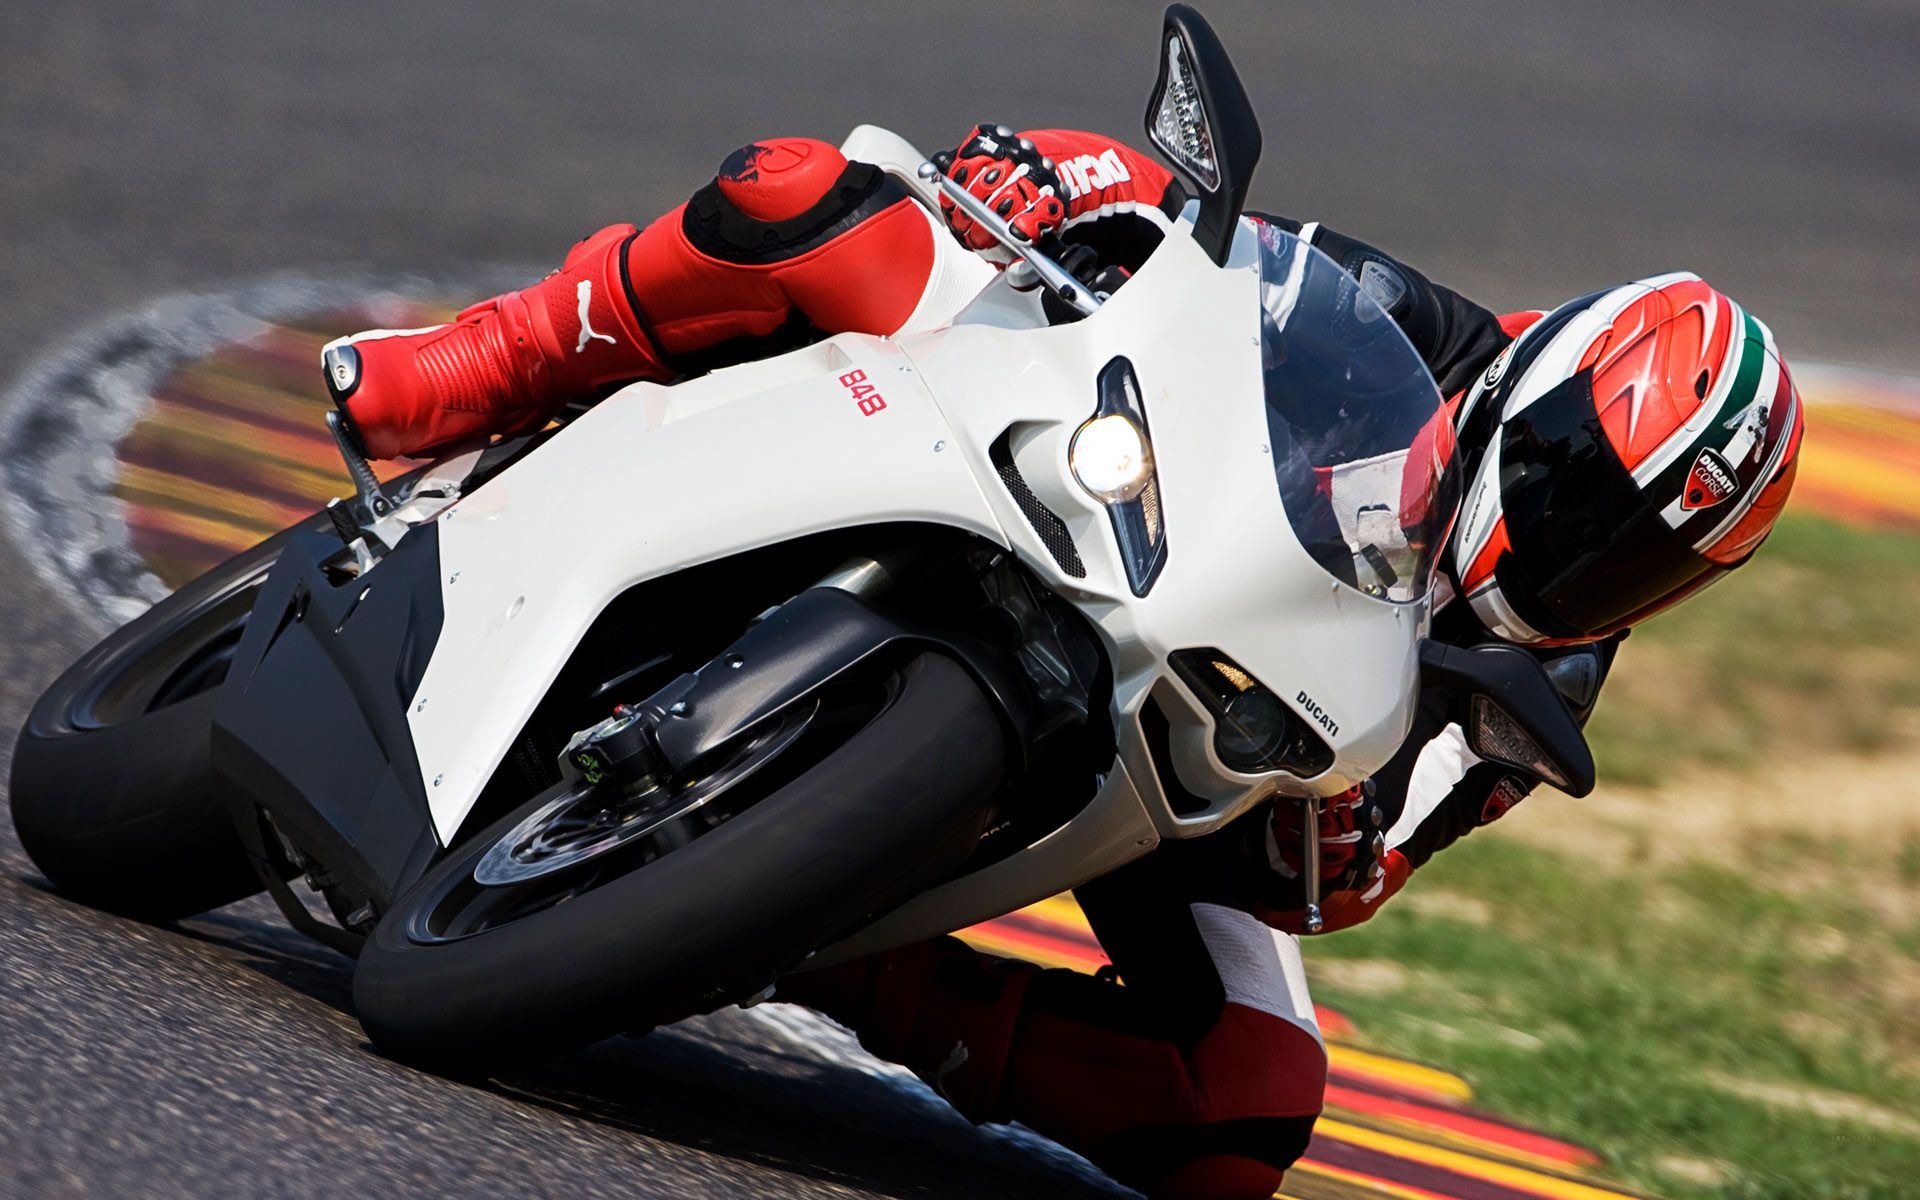 Dangerous Sports Motorcycle Racing Low In The Corner With